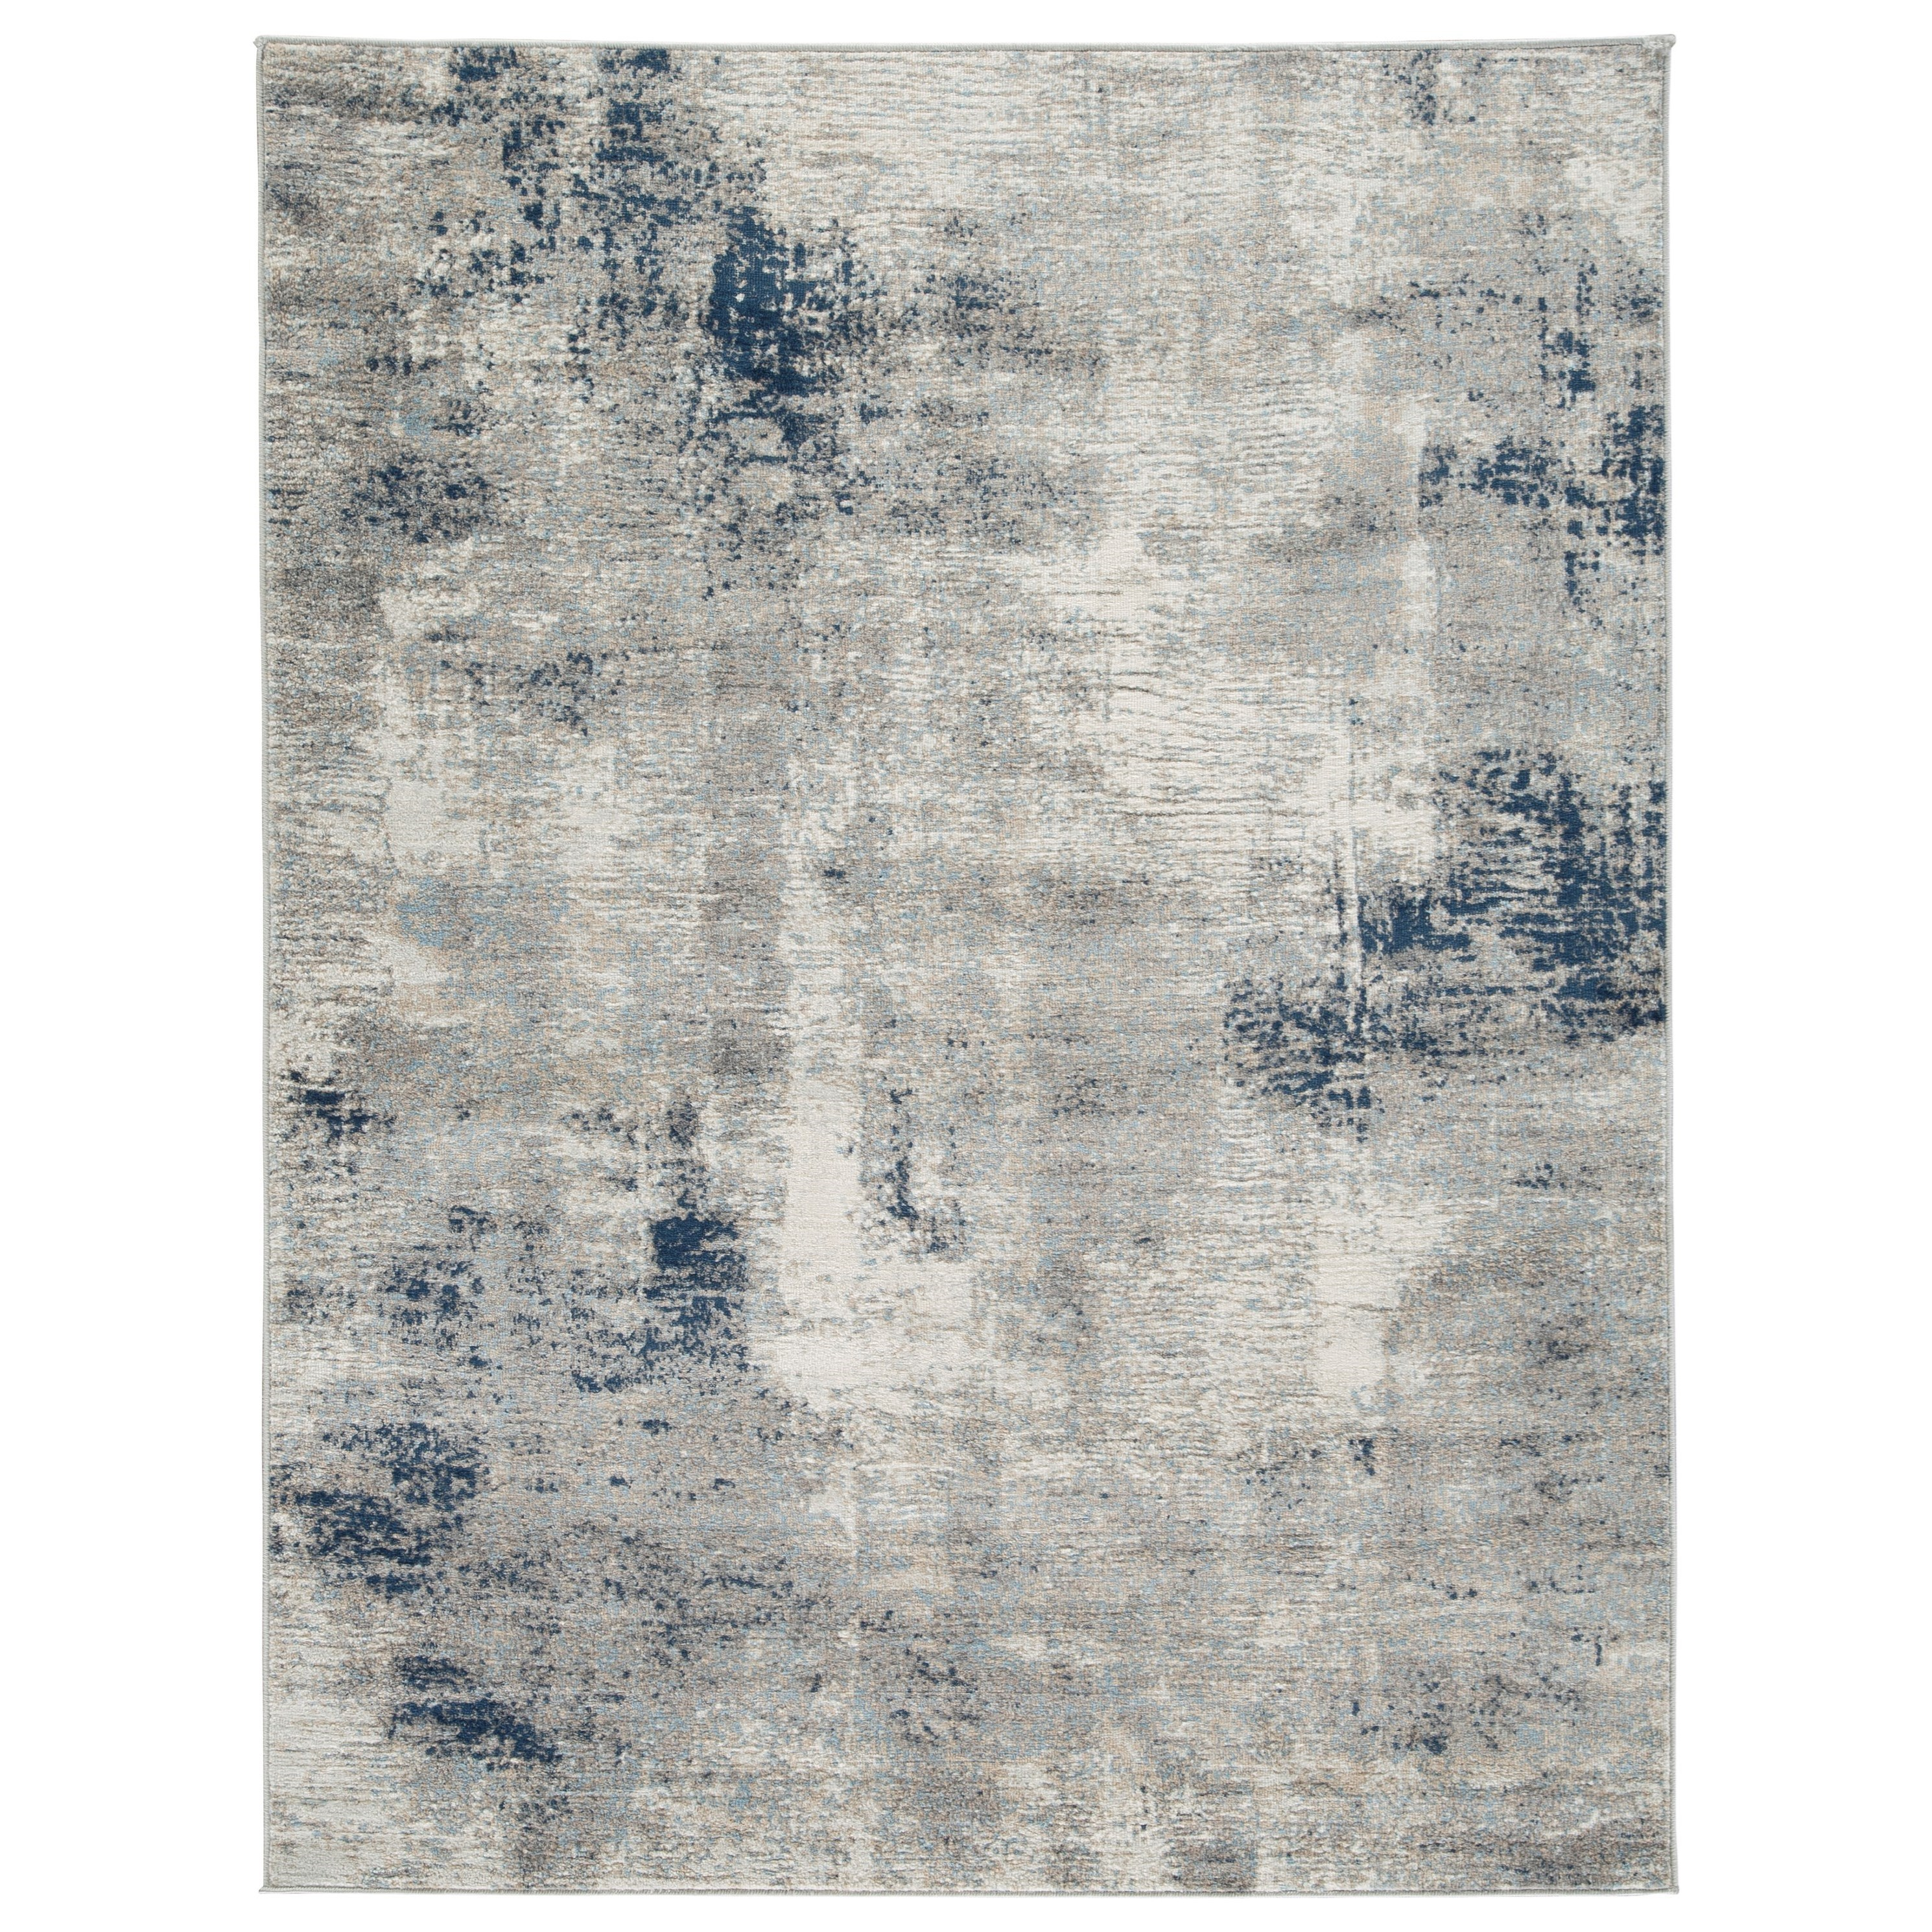 Contemporary Area Rugs Wrenstow Medium Rug by Signature Design by Ashley at Northeast Factory Direct